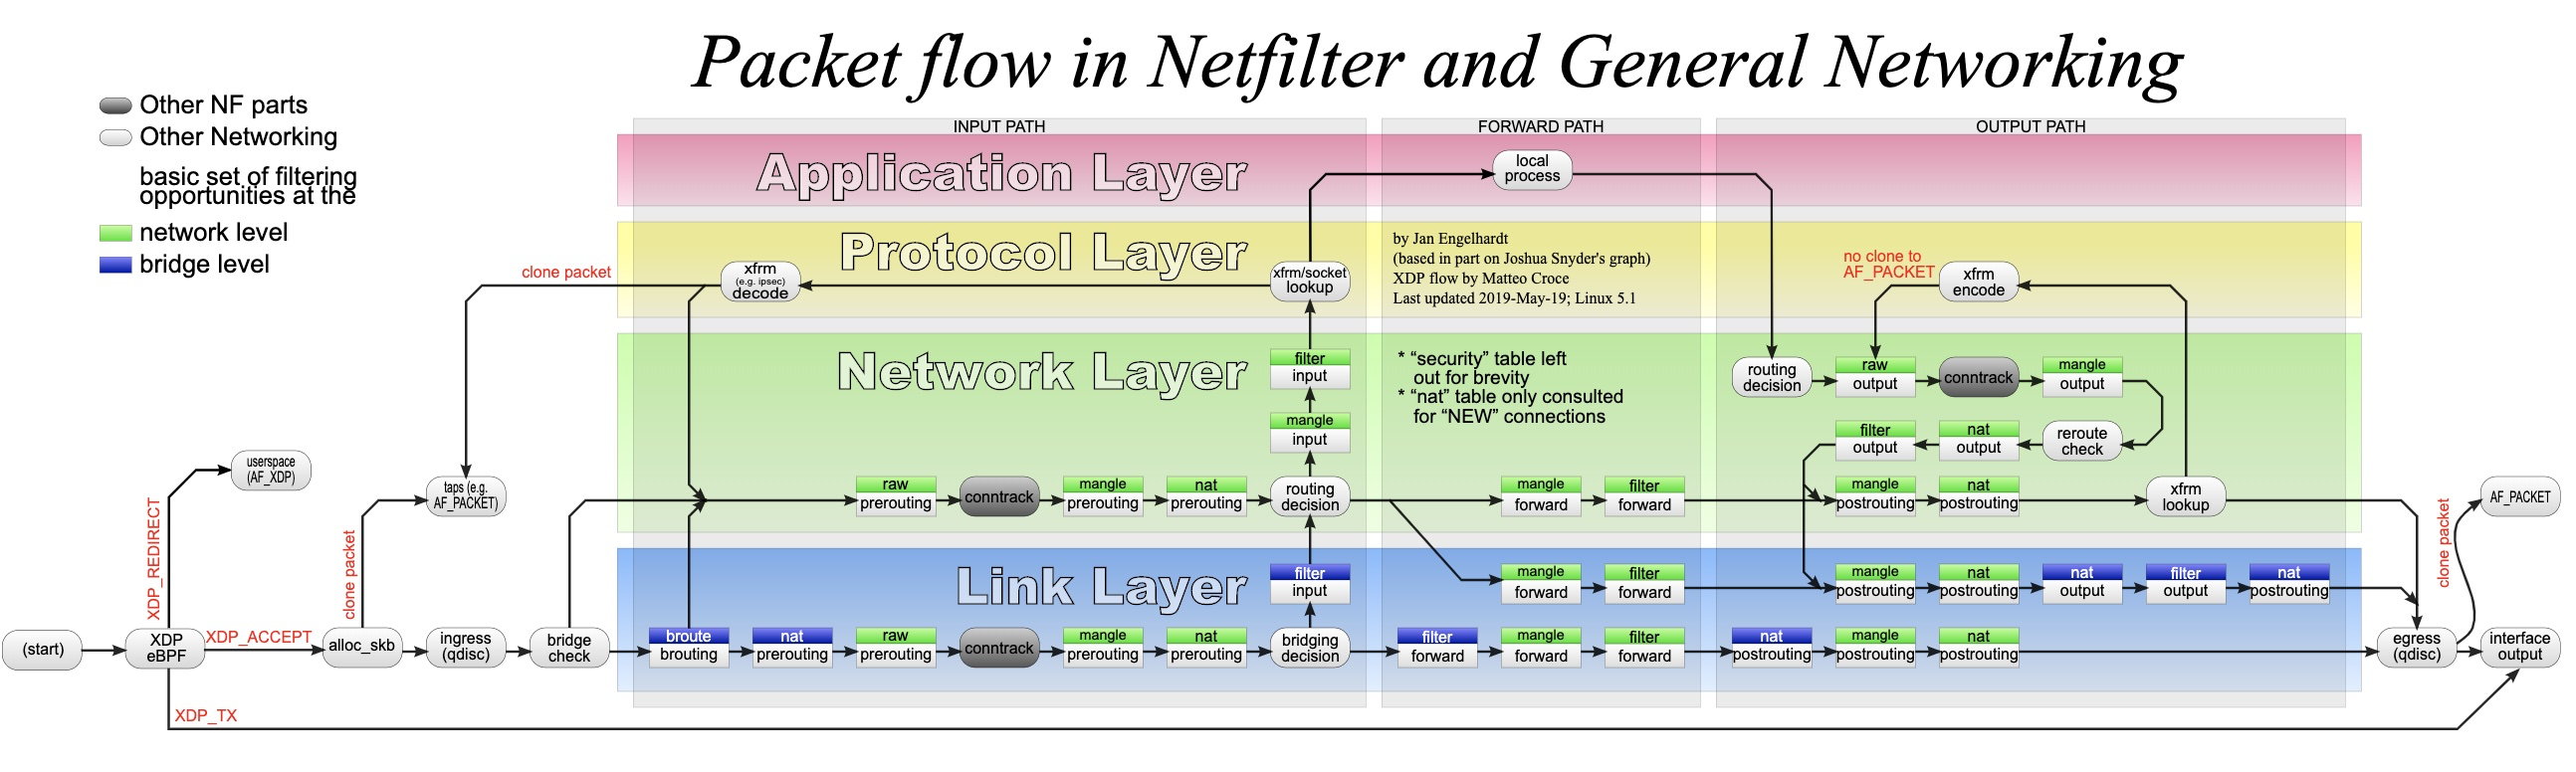 Packet flow in Netfilter and General Networking